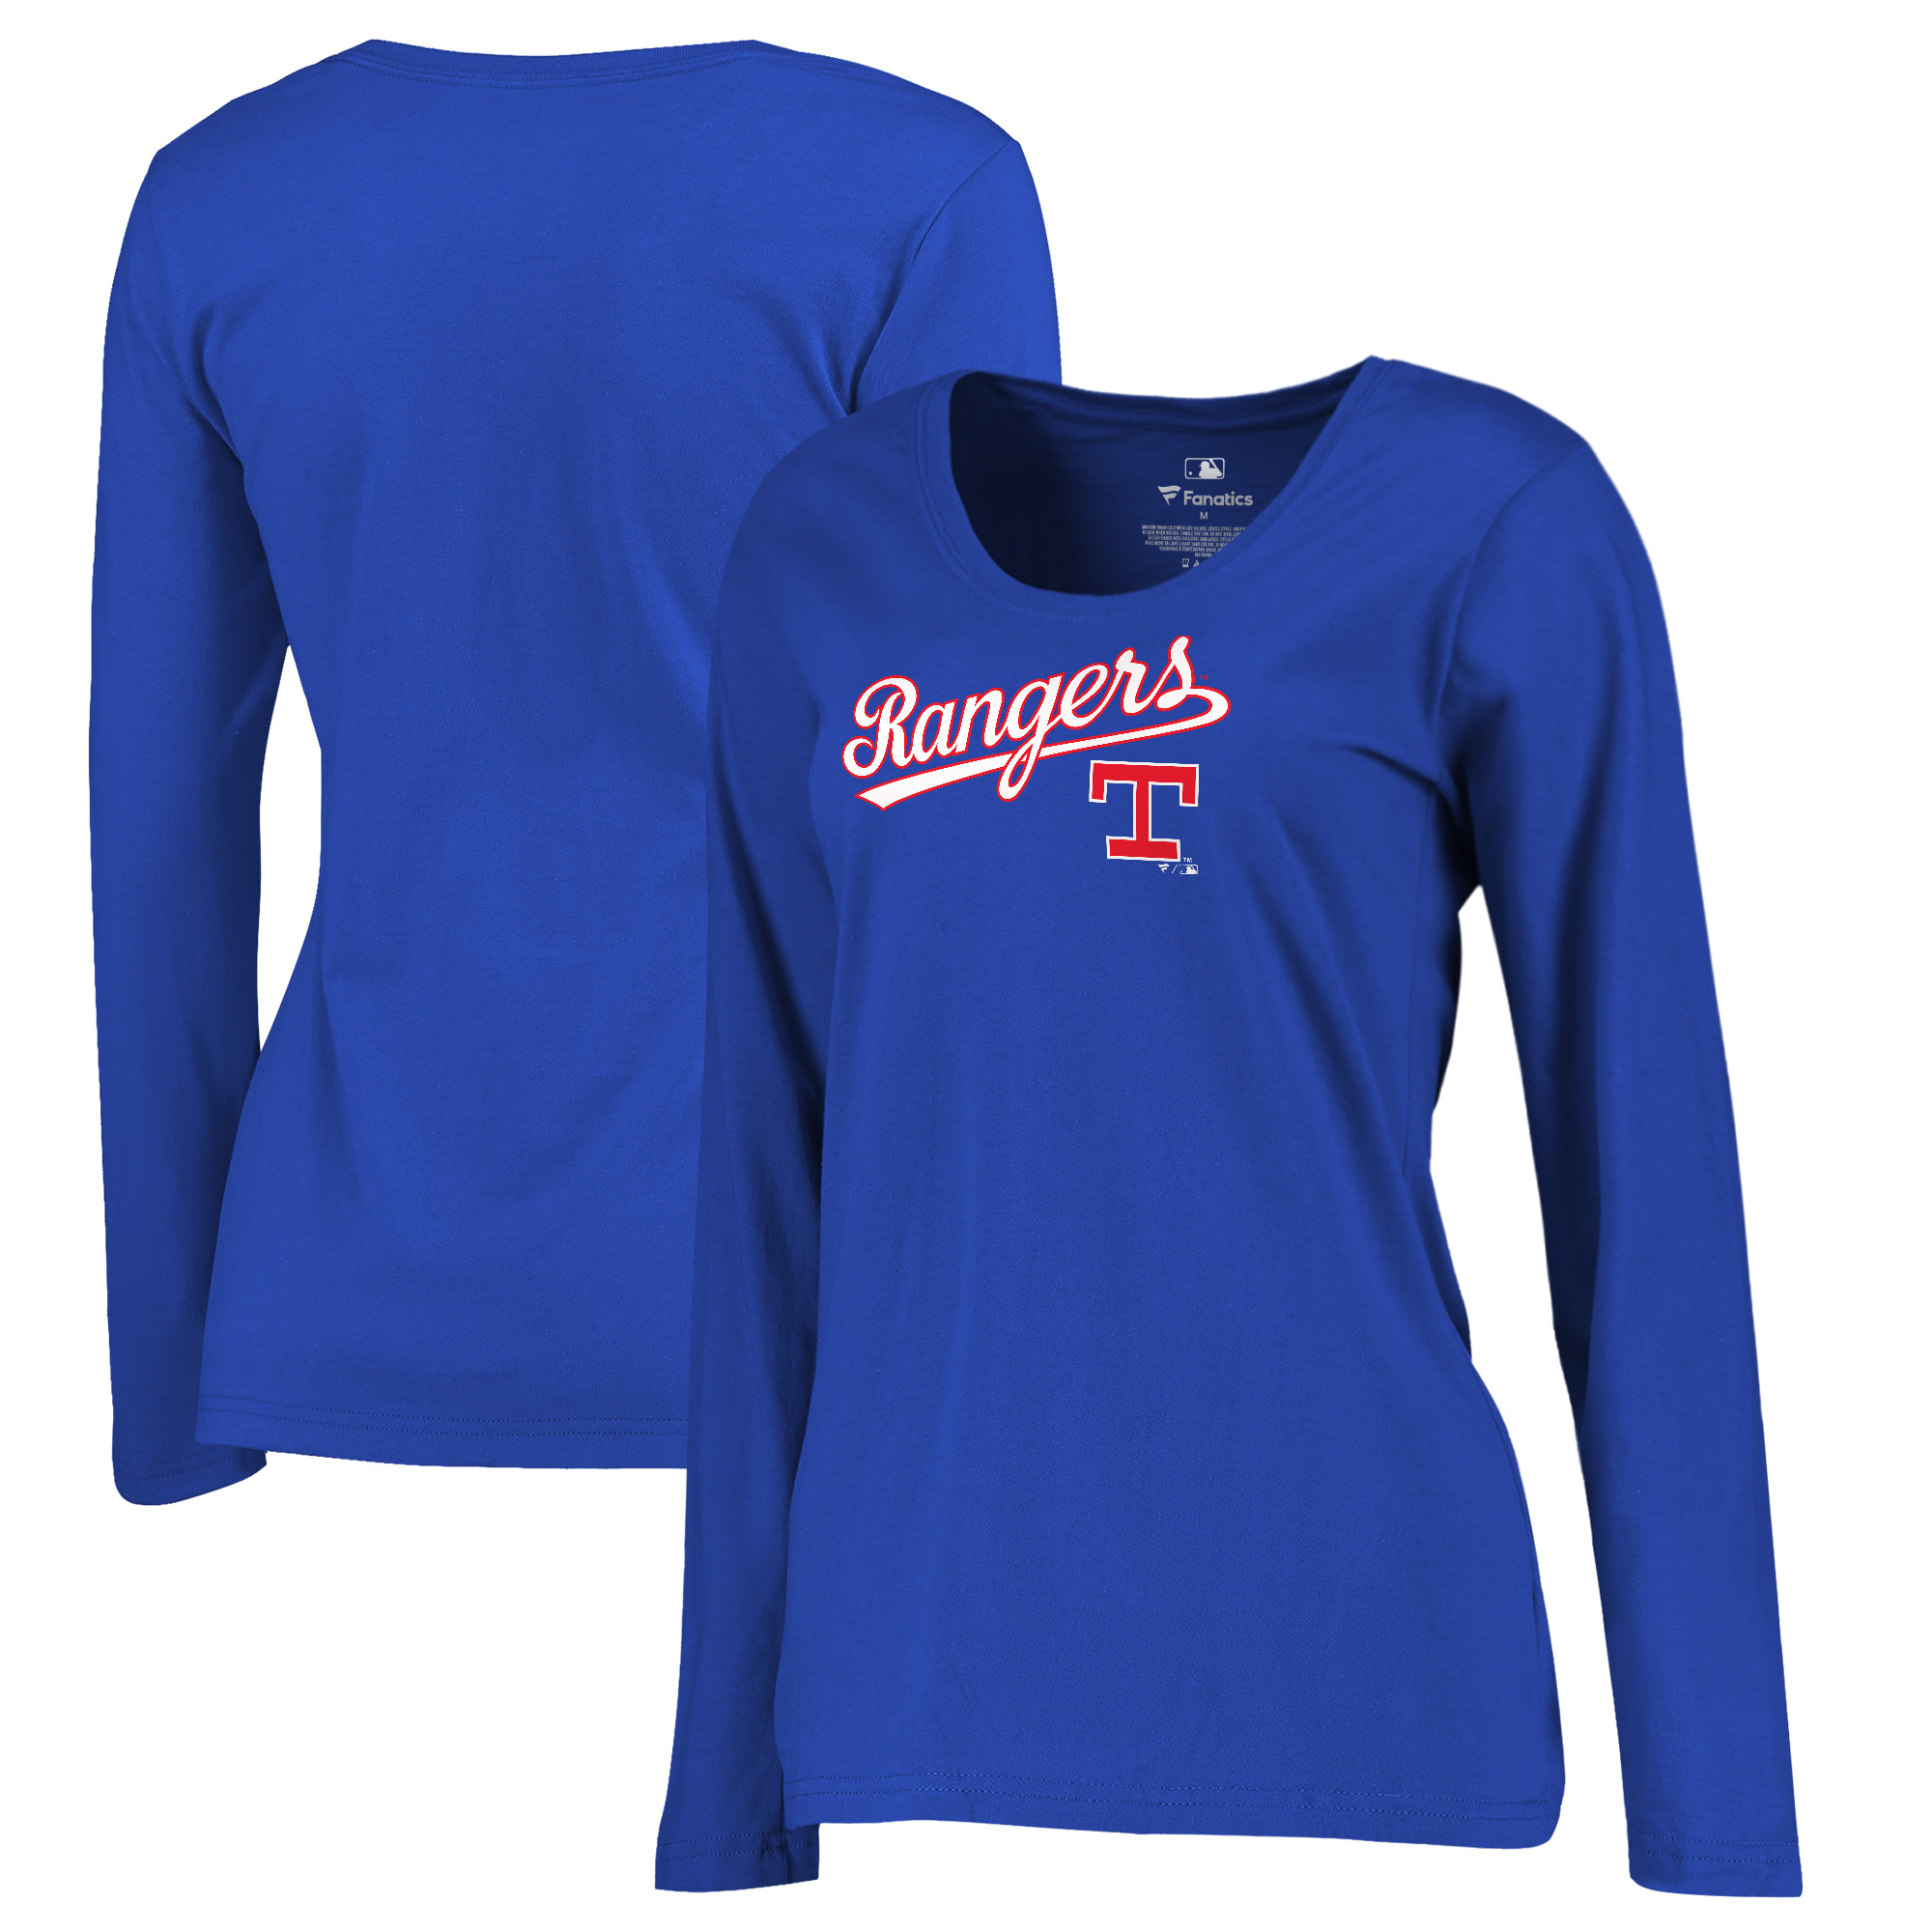 Texas Rangers Fanatics Branded Women's Plus Size Cooperstown Collection Wahconah Long Sleeve T-Shirt - Royal